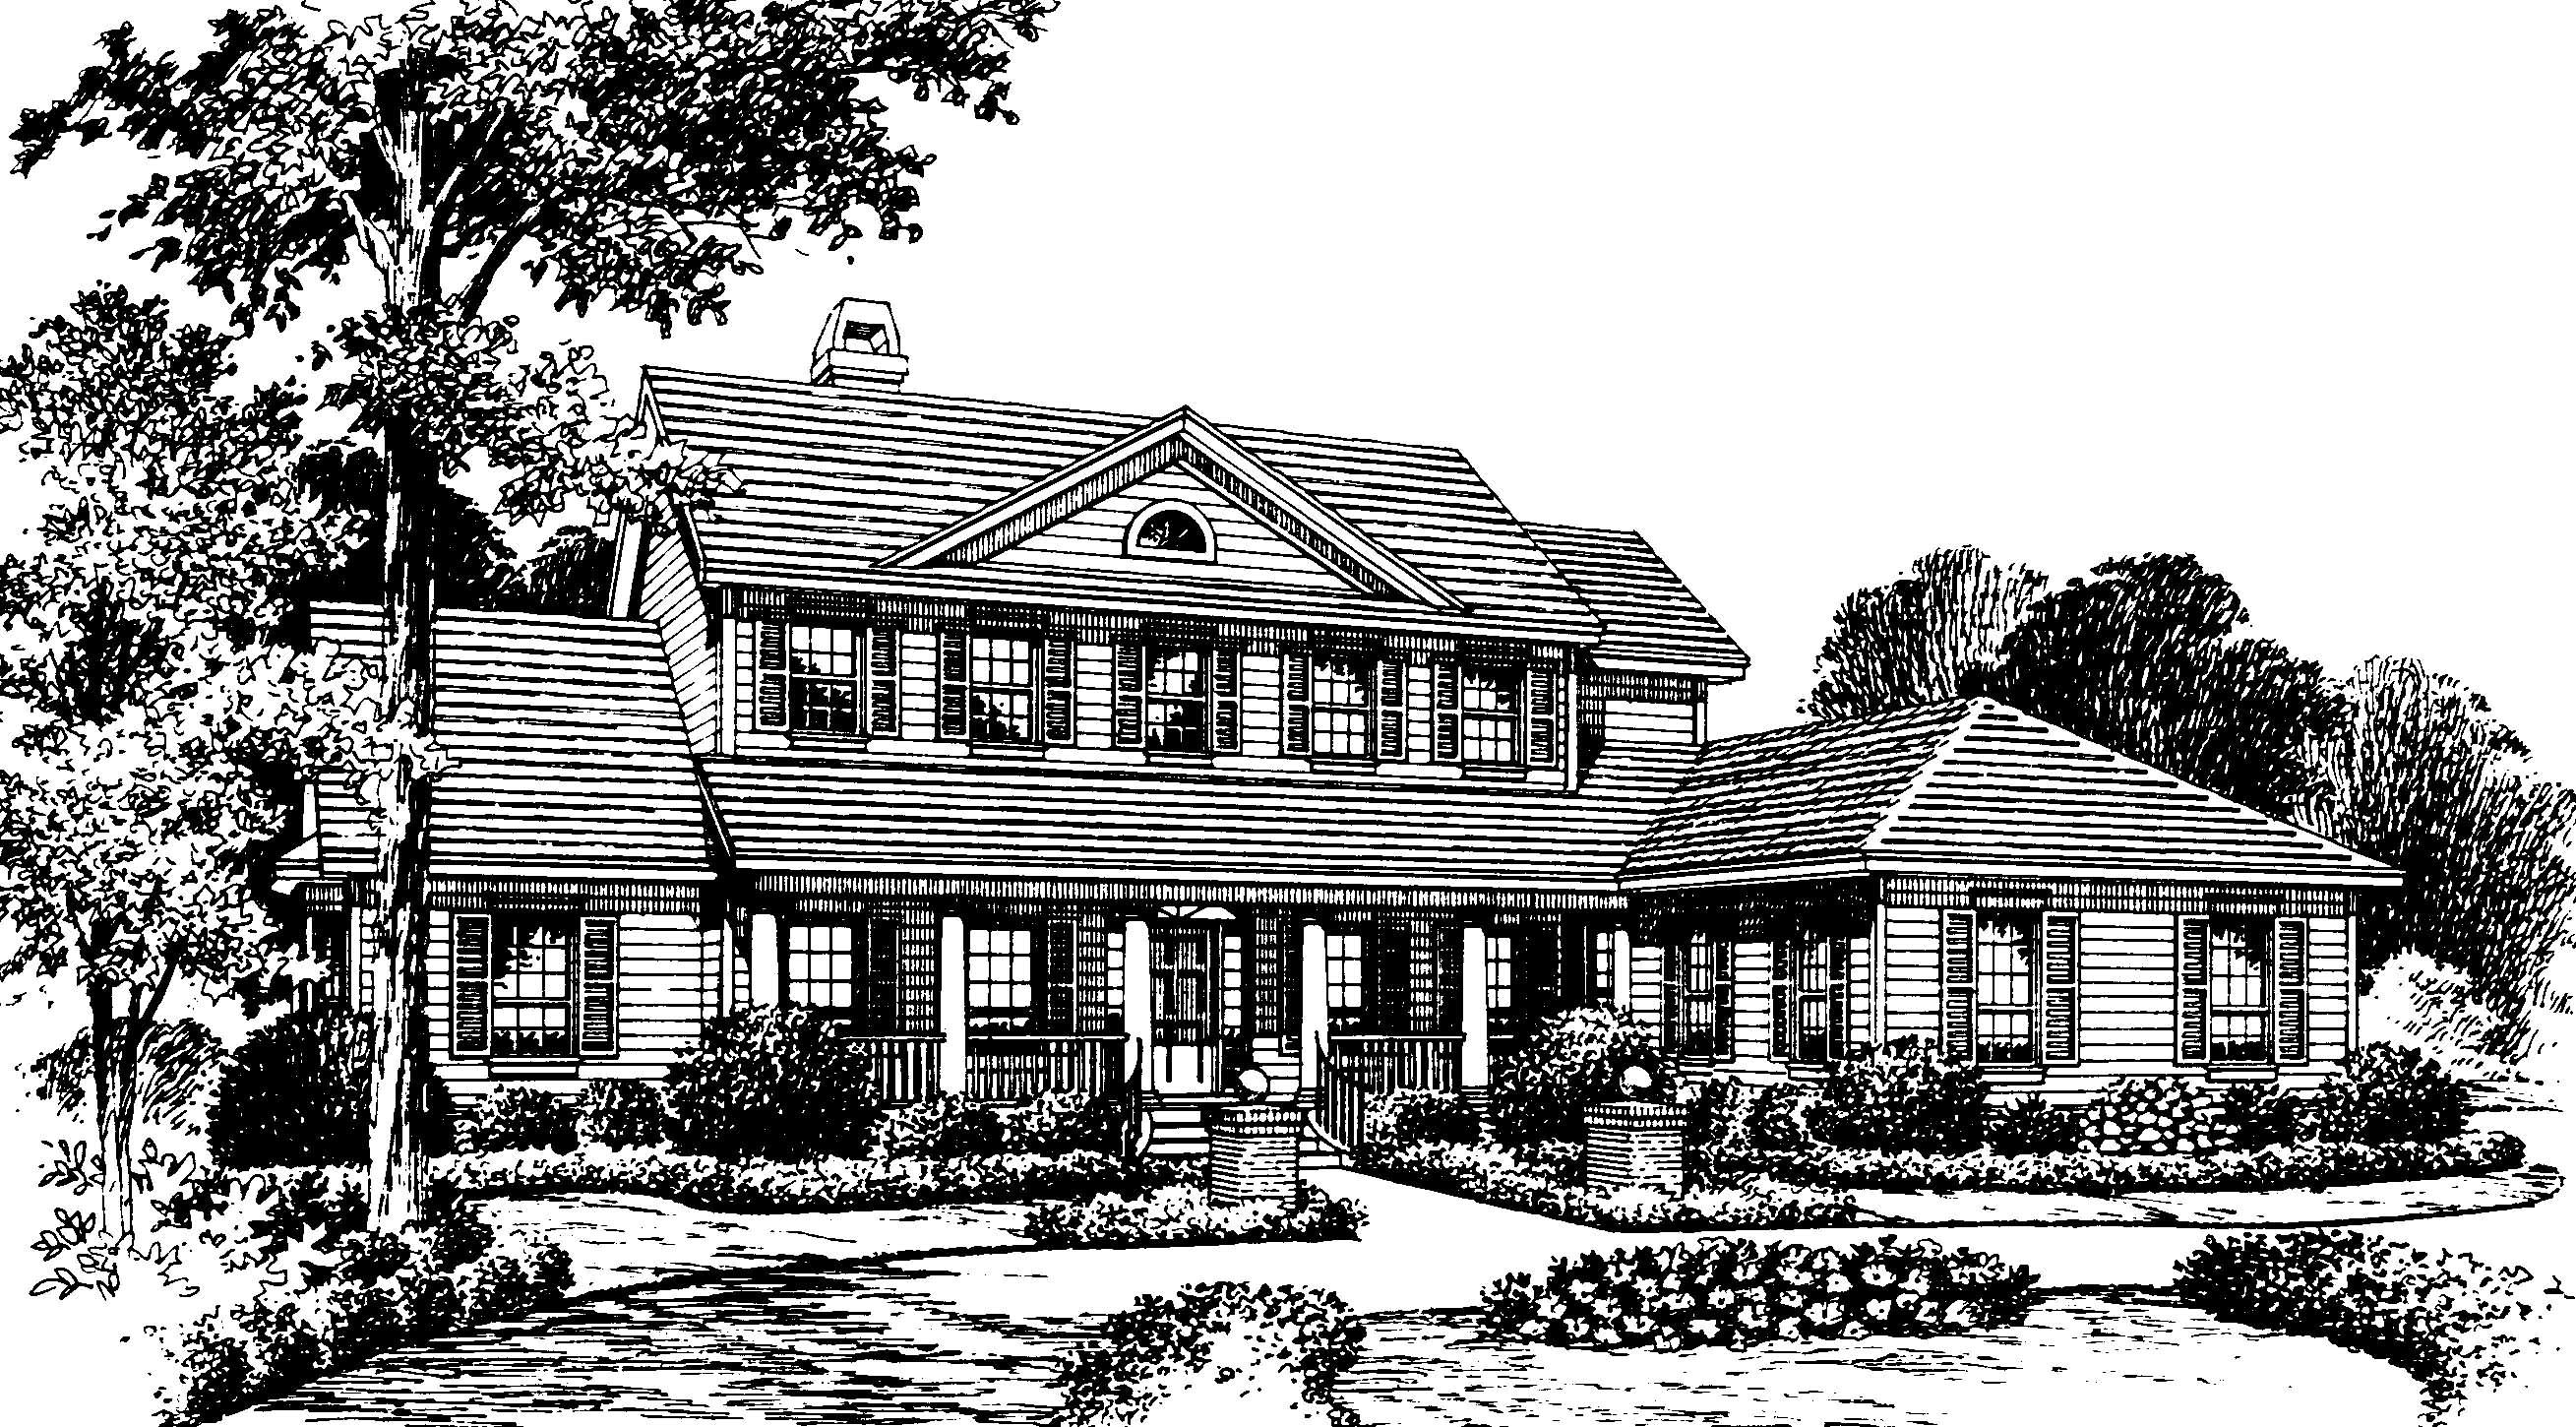 Southern country home plan 83320cl architectural for Southern country house plans